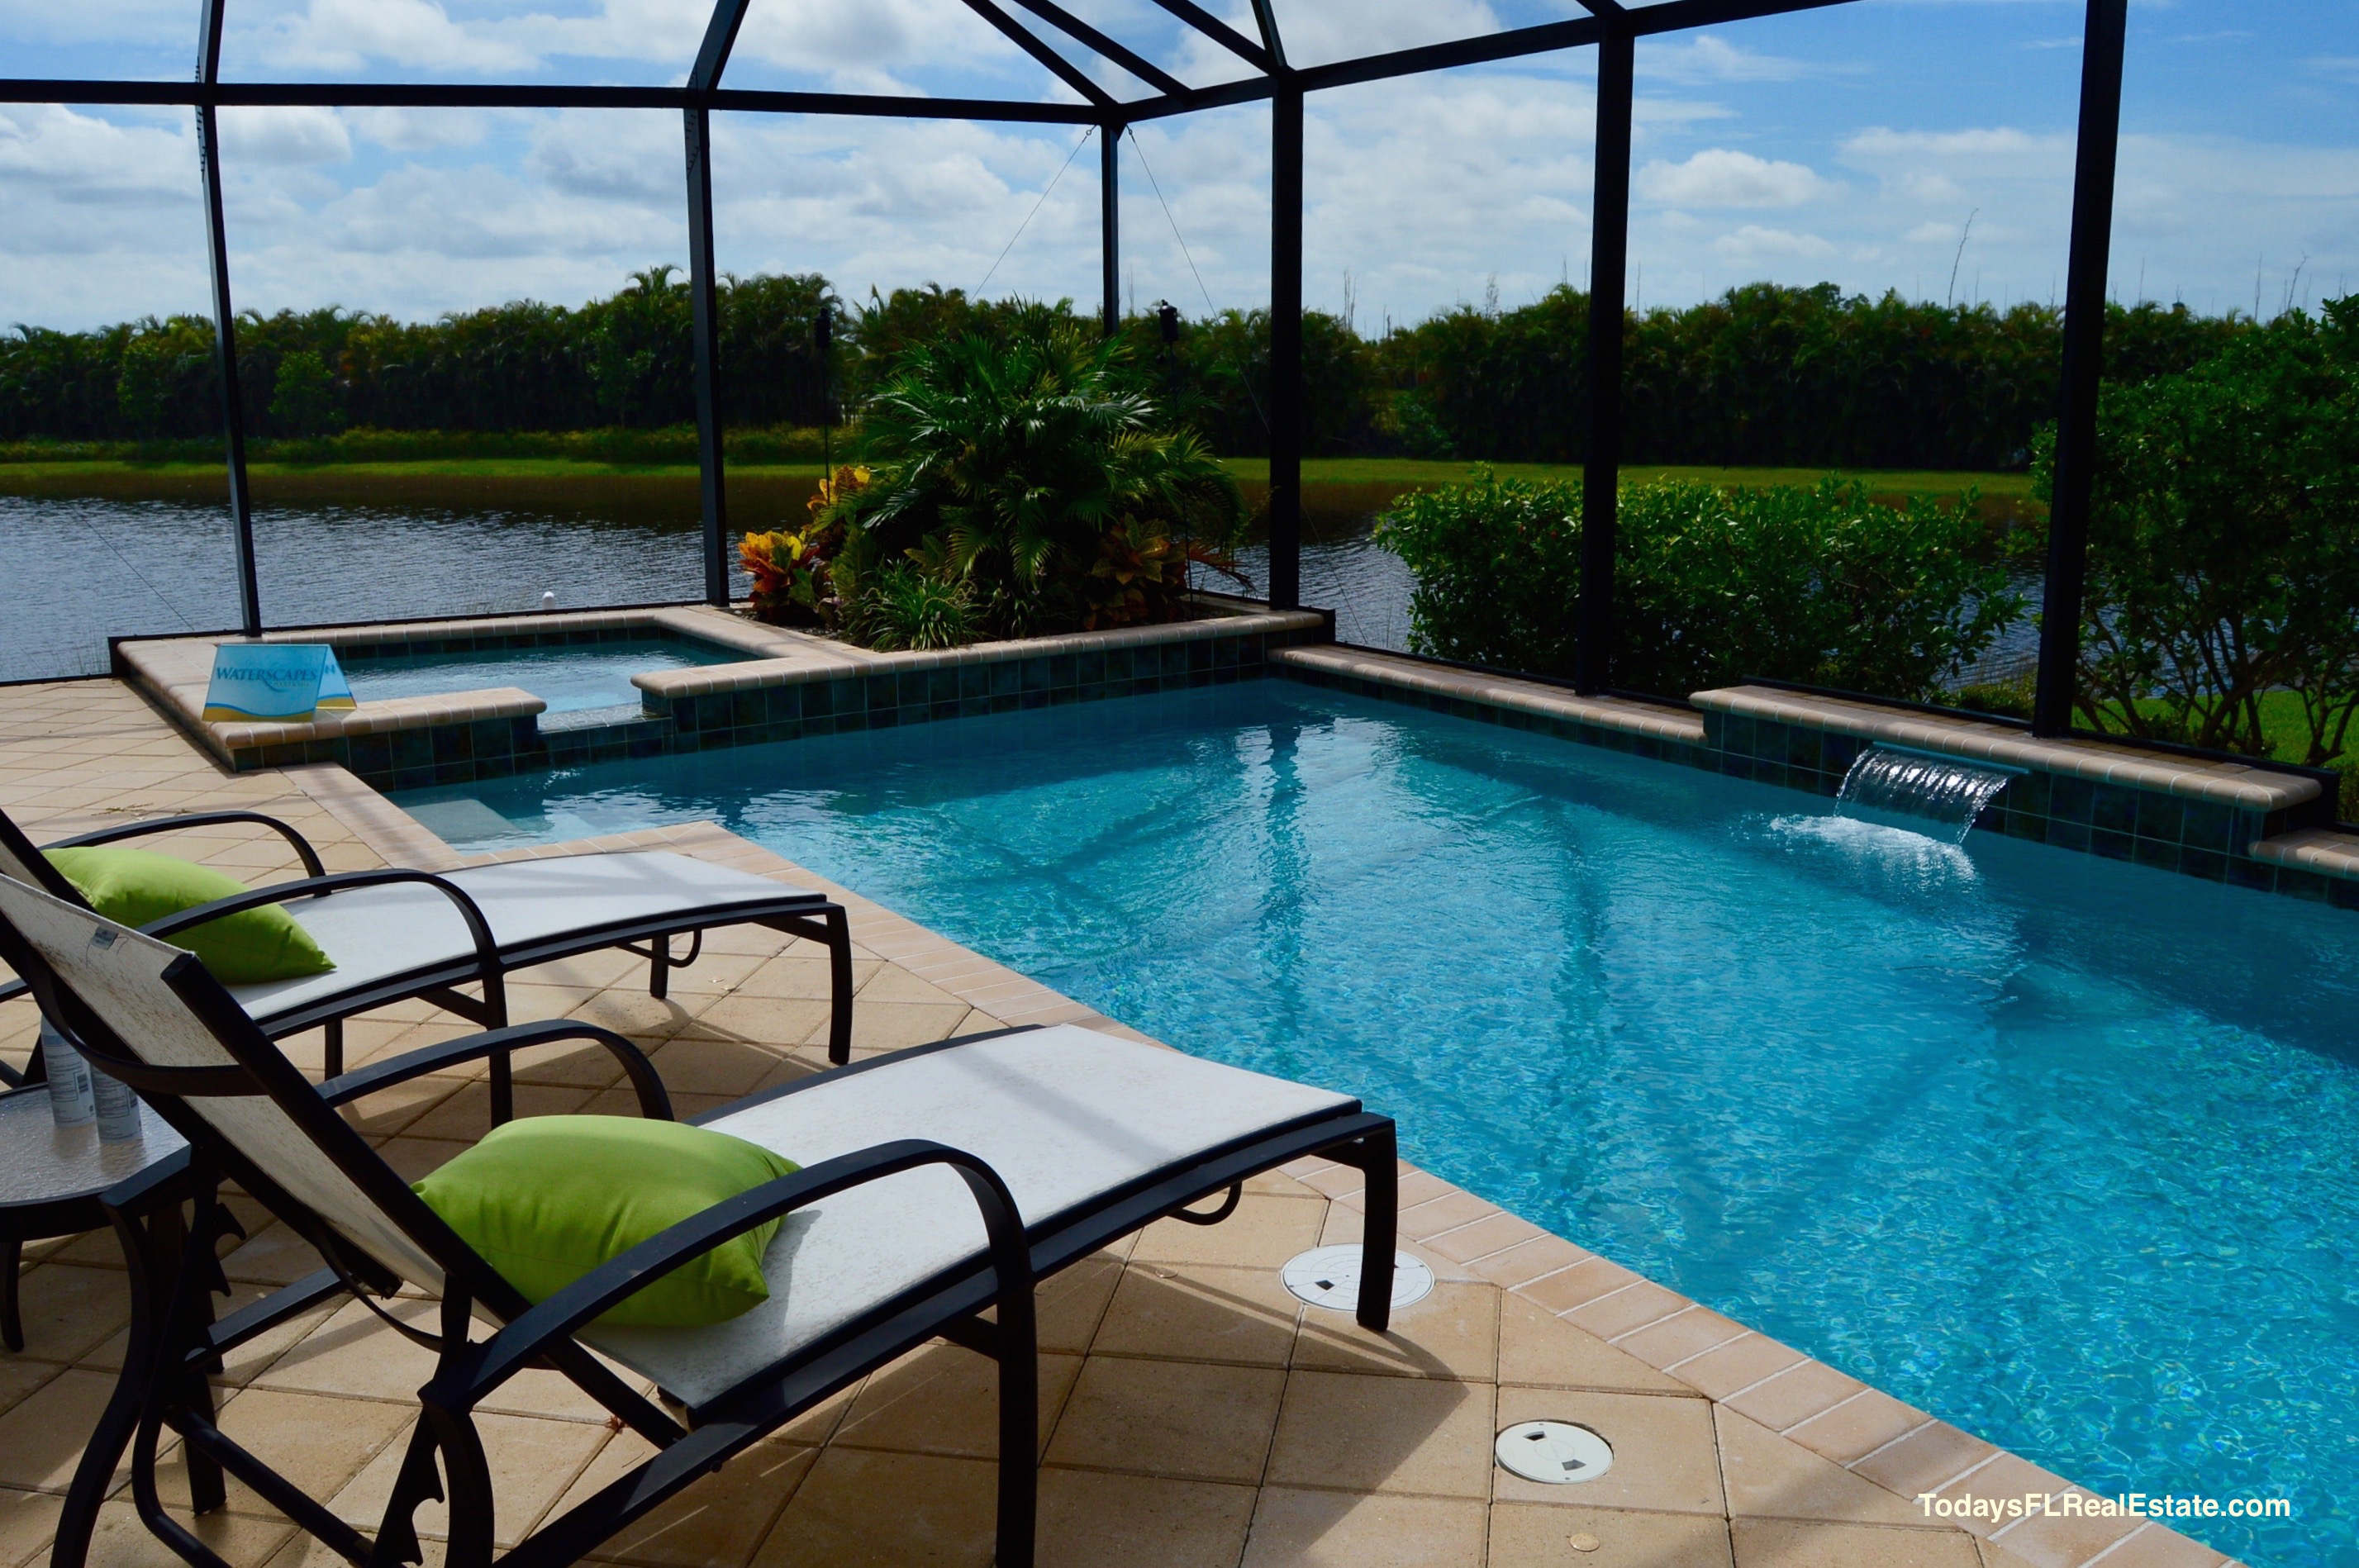 Swimming pool homes cape coral cape coral real estate for Houses for sale pool